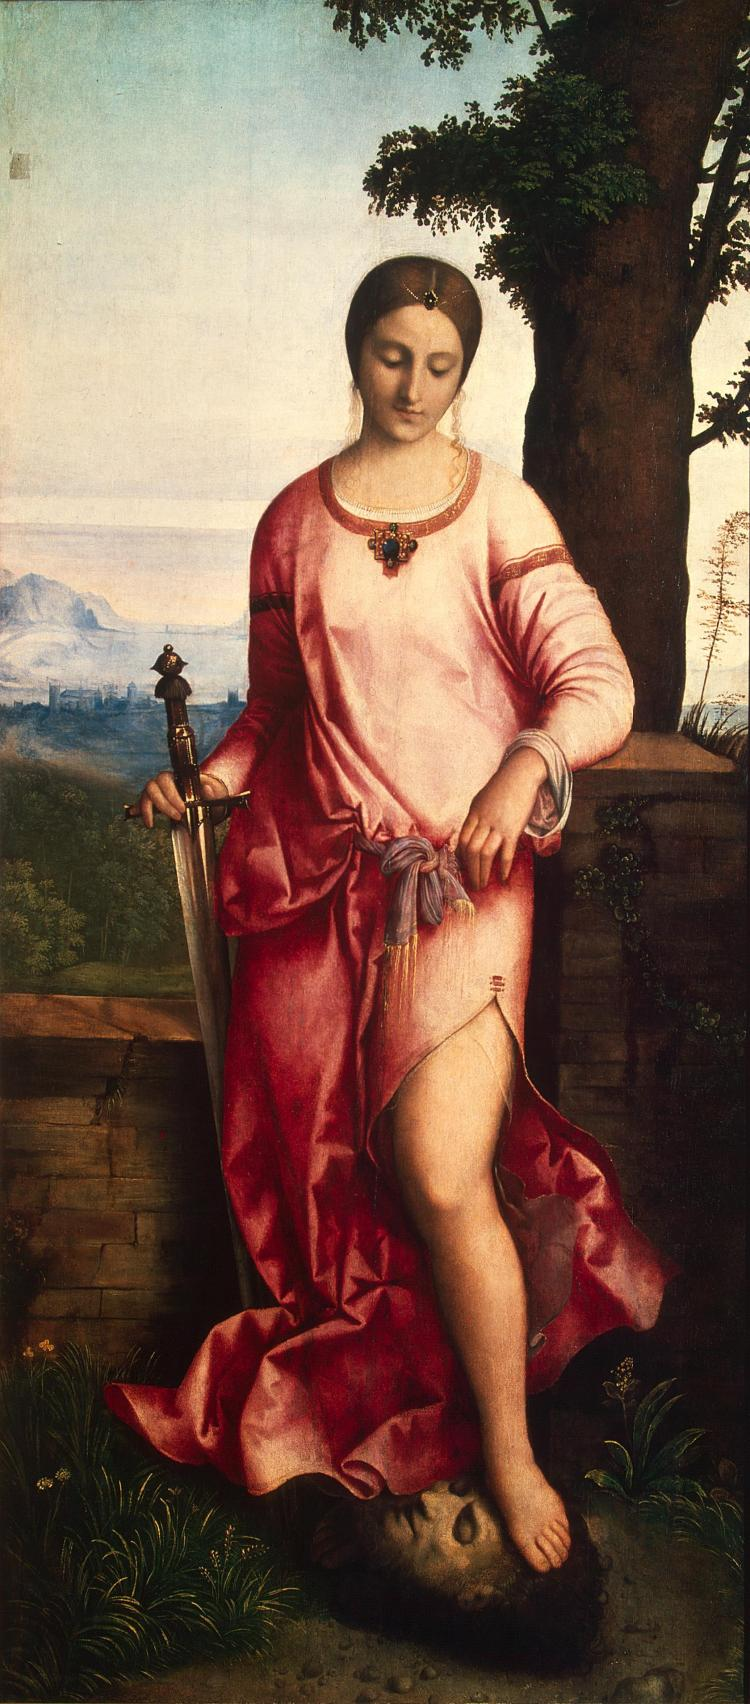 Giorgione, Judith with the head of Holofernes